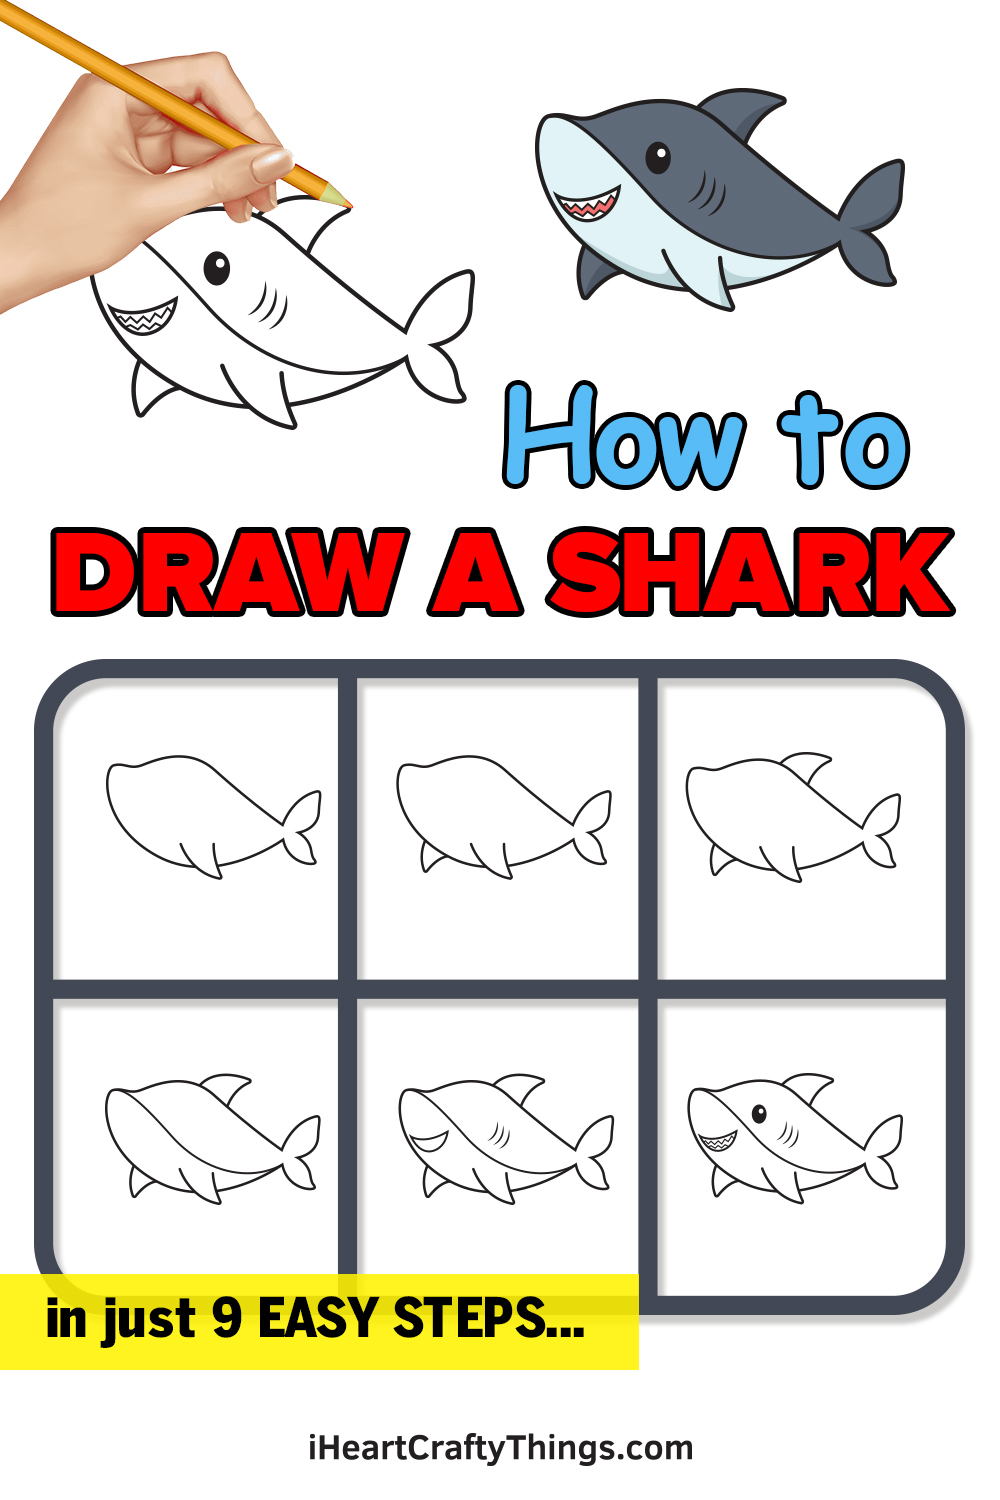 how to draw a shark in 9 easy steps